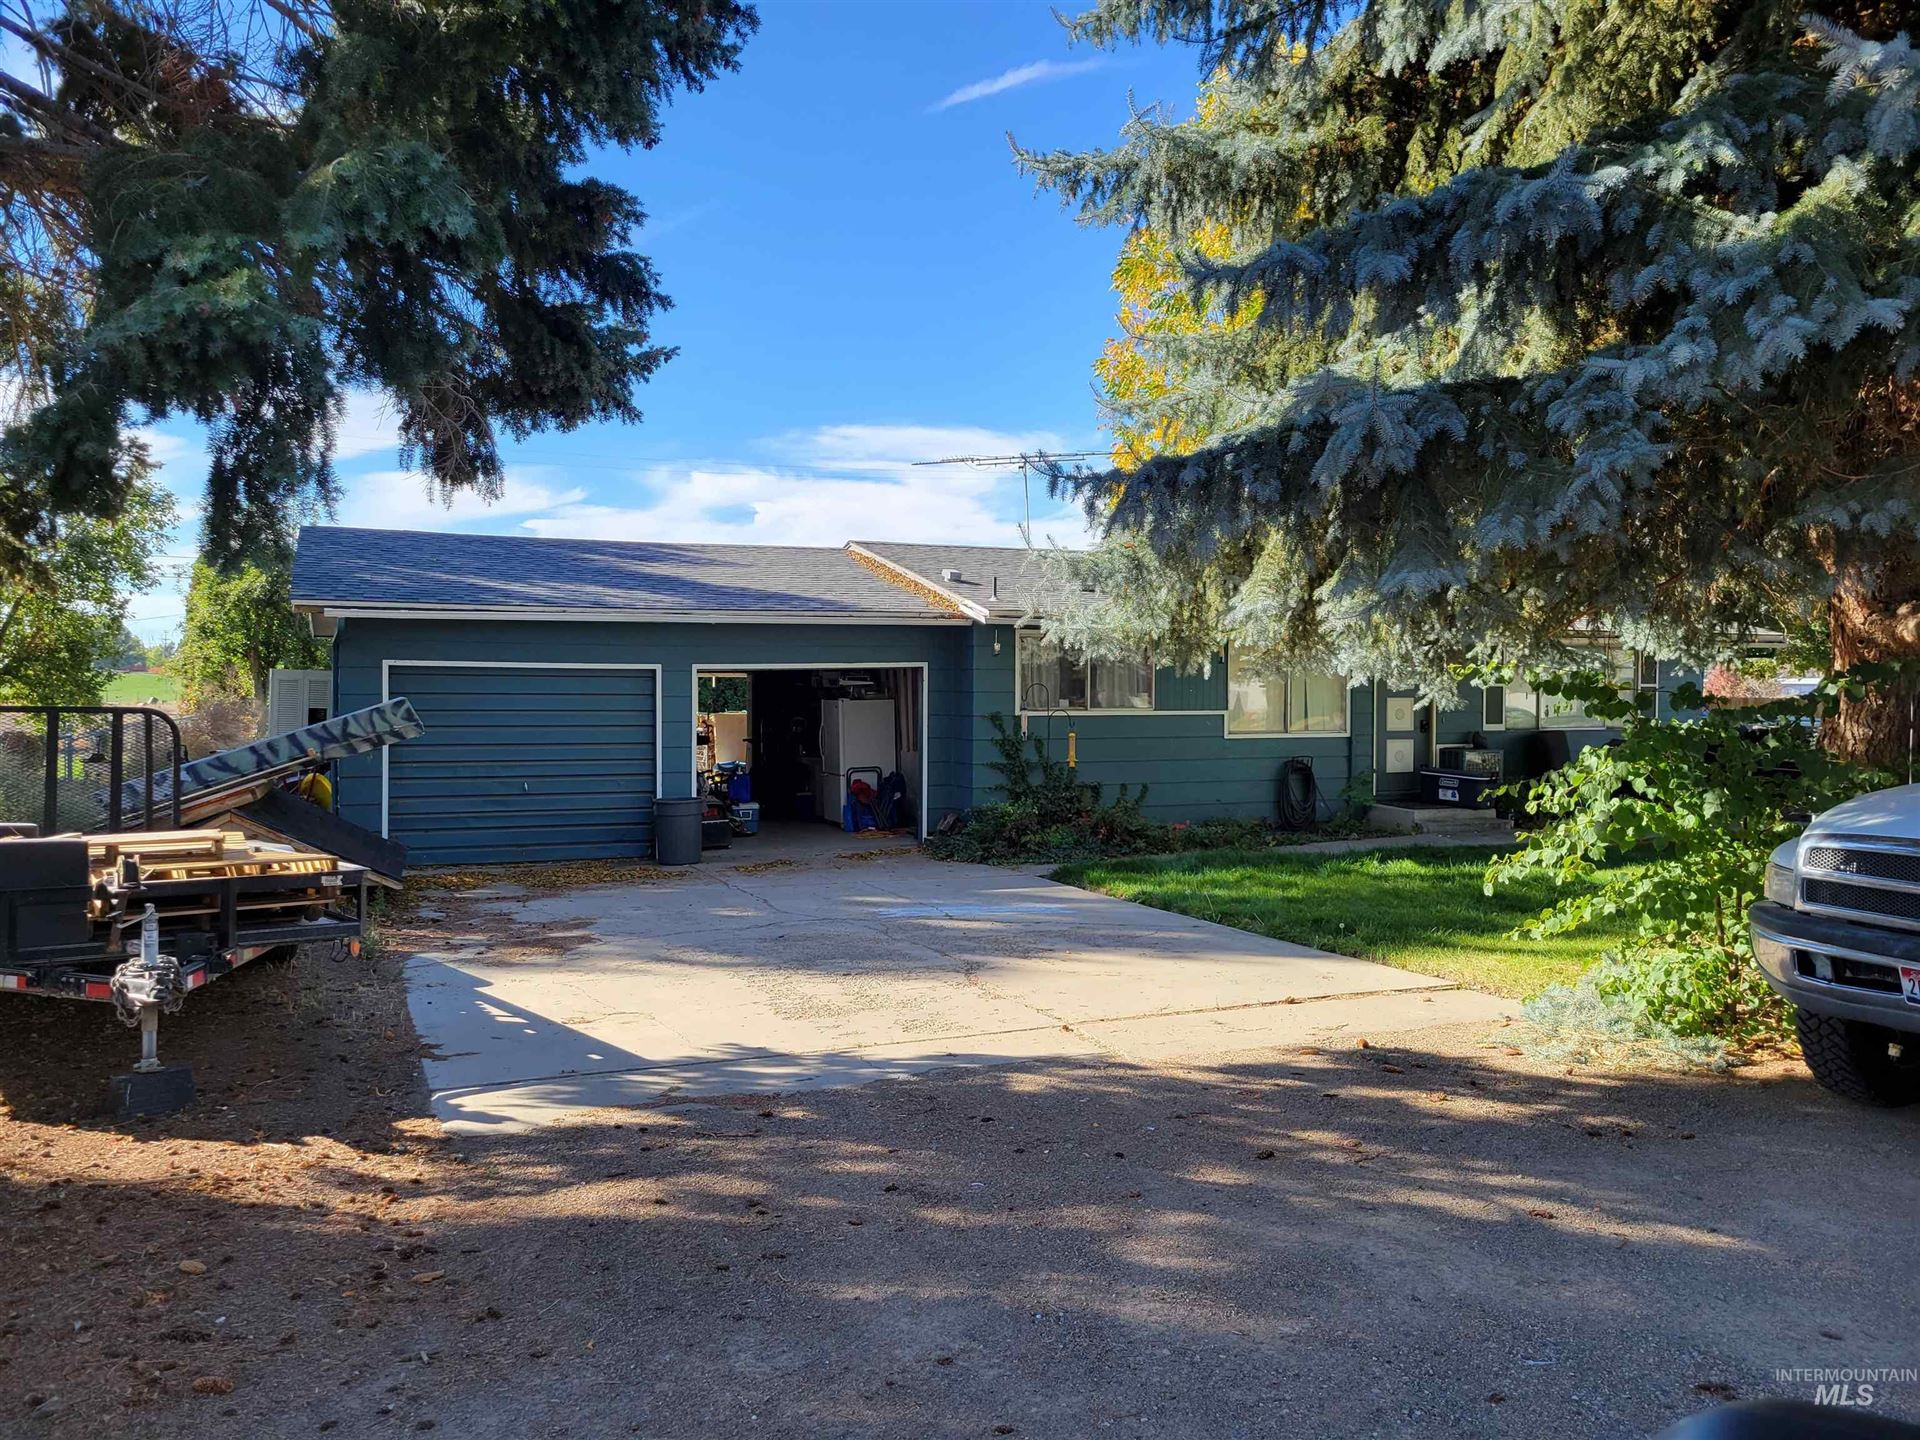 367 Orchard Dr, Gooding, ID 83330 - MLS#: 98821243